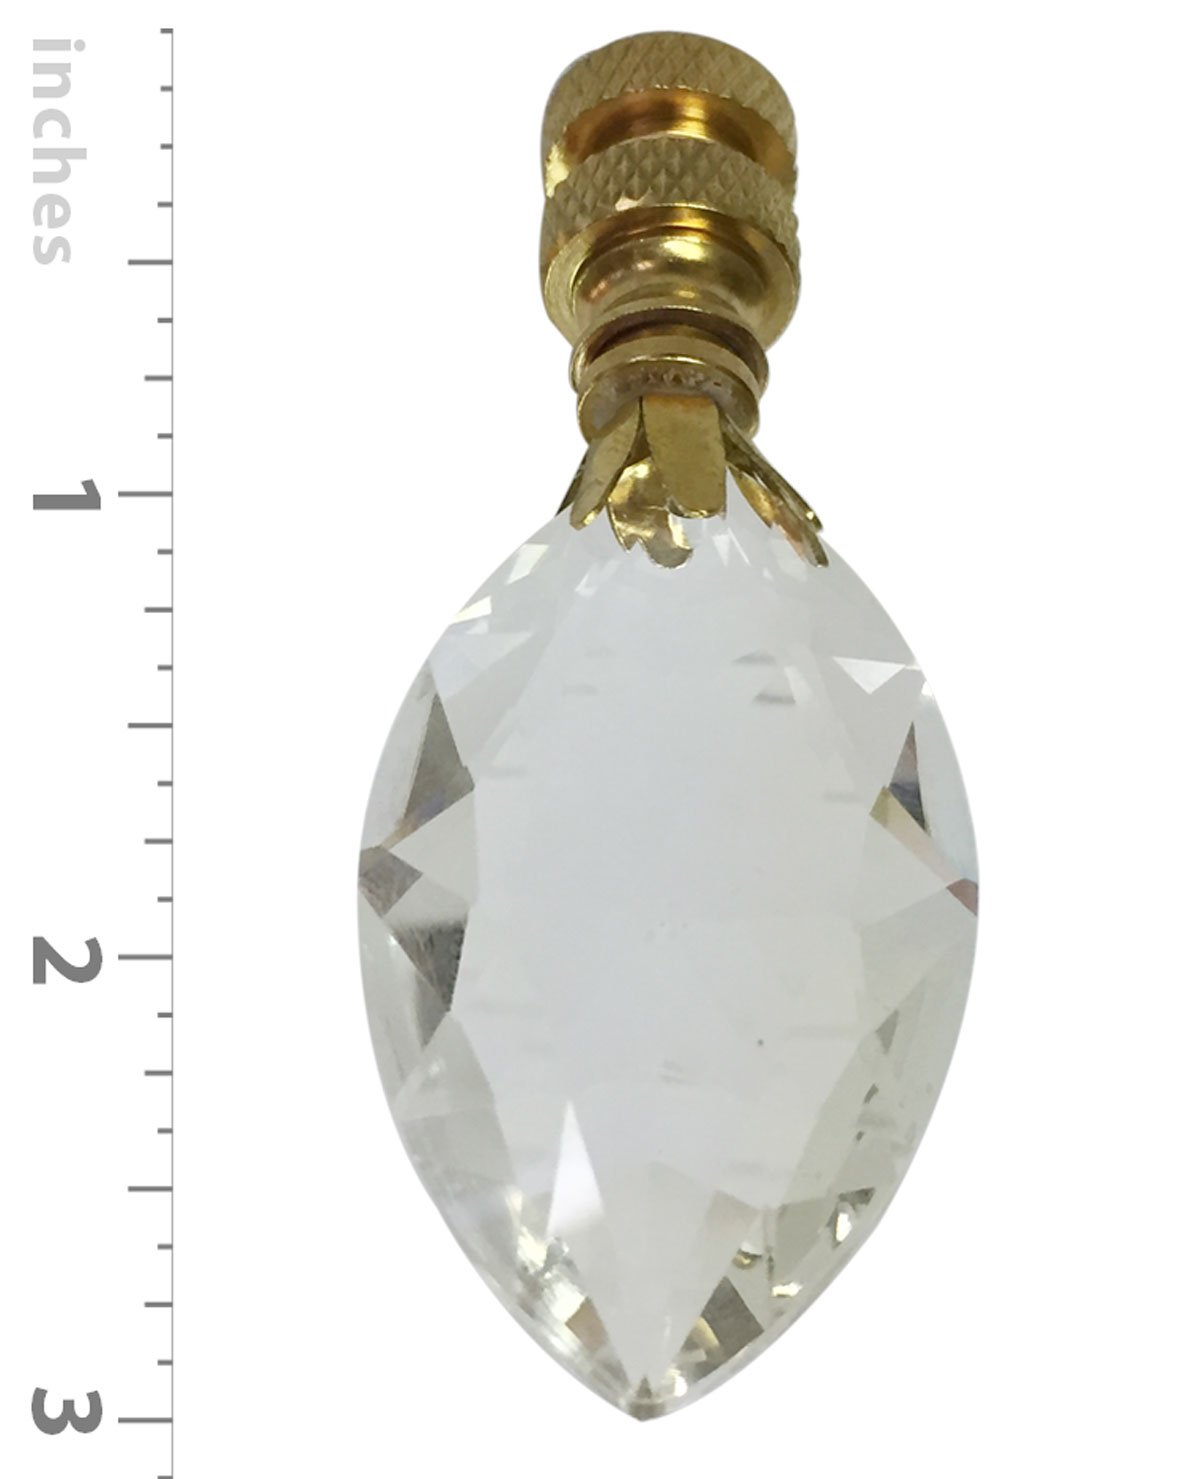 Royal Designs Fan Pull Chain with Pear Shaped Crystal Finial – Polished Brass – Set of 2 by Royal Designs, Inc (Image #3)